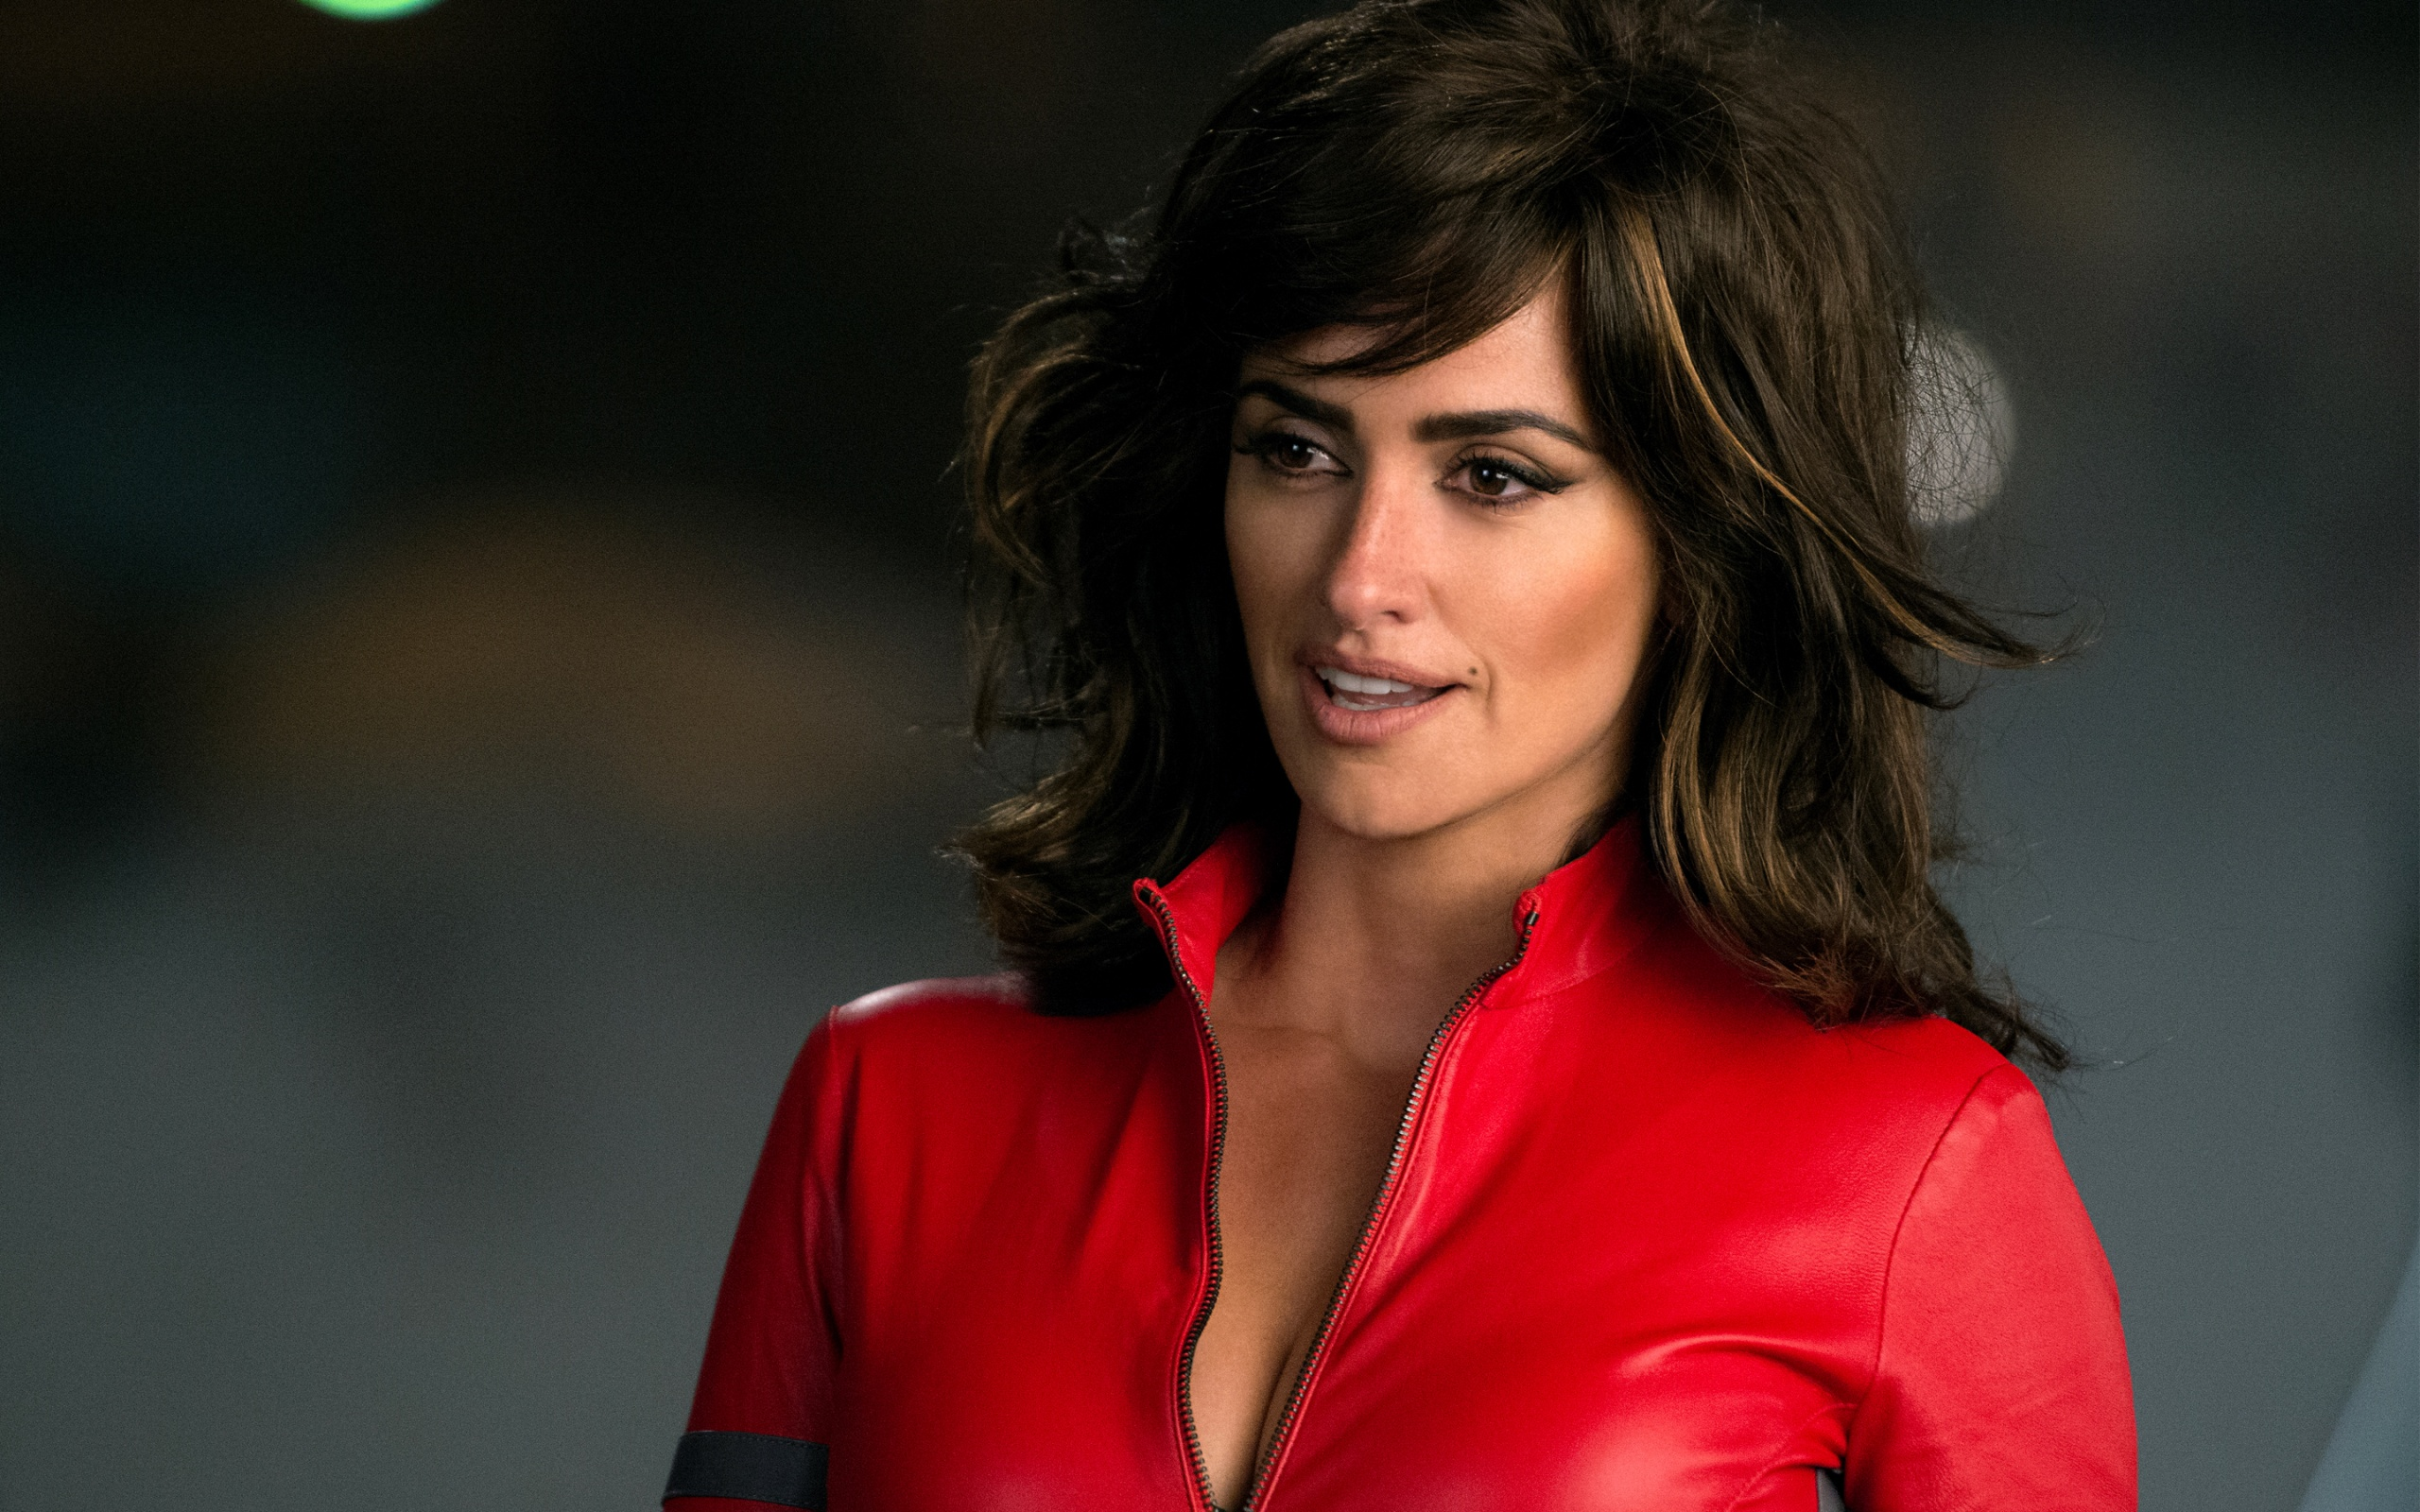 penelope cruz valentina valencia wallpapers in jpg format for free